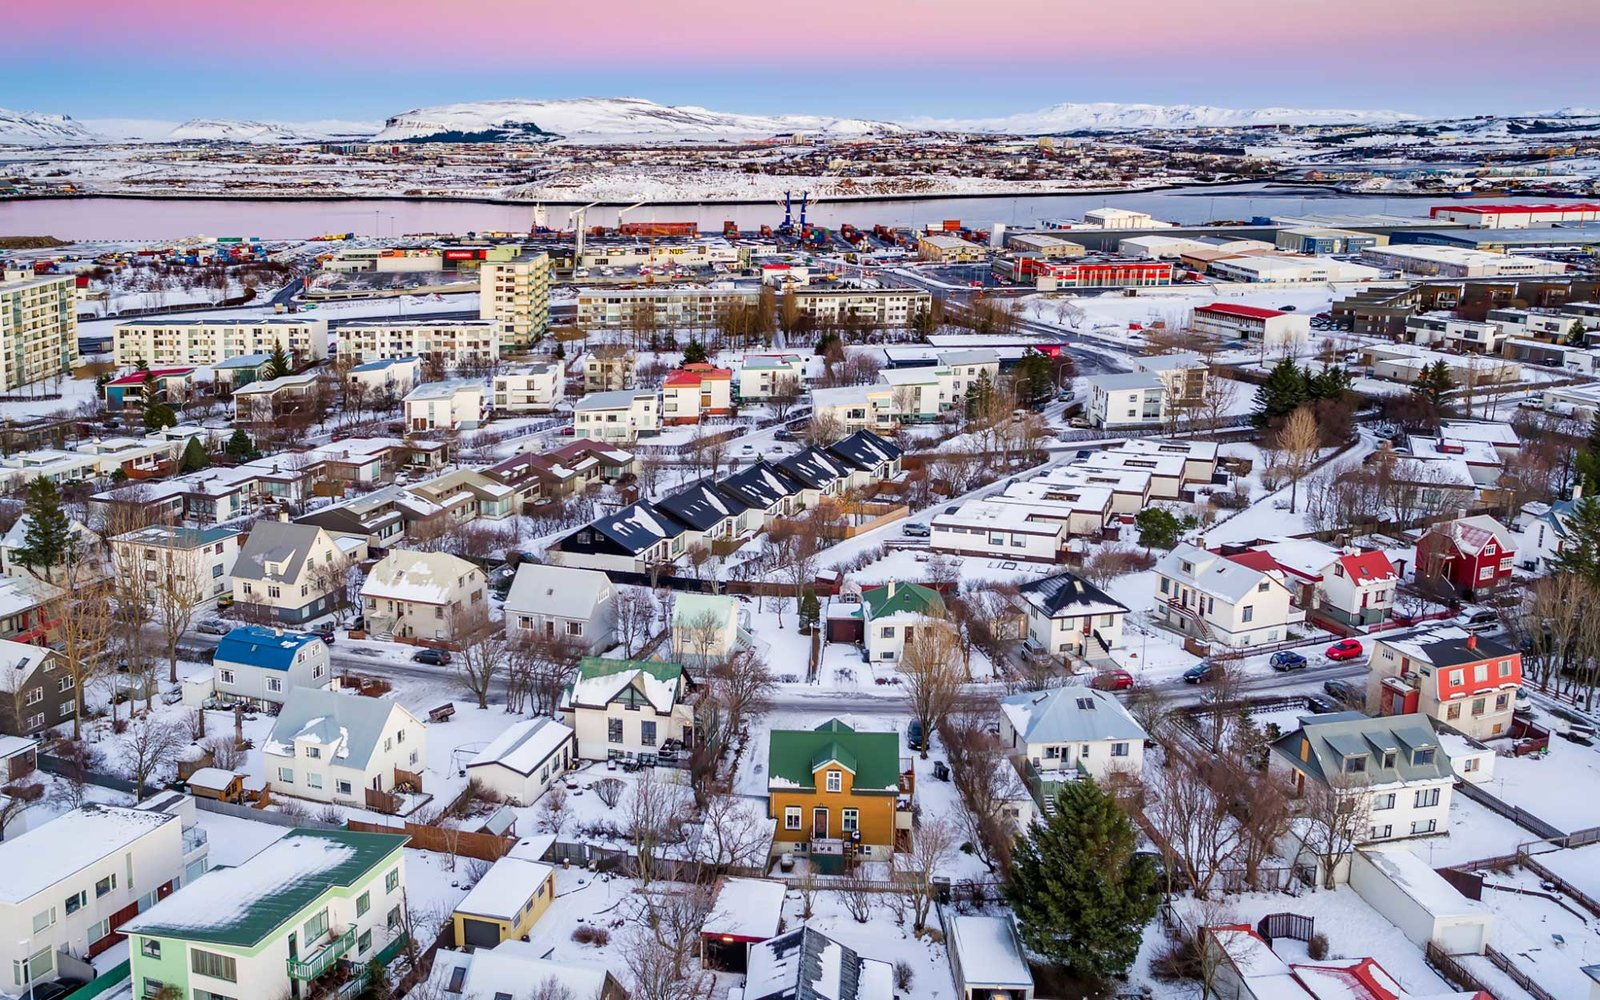 Top view-neighborhood in Reykjavik, Iceland